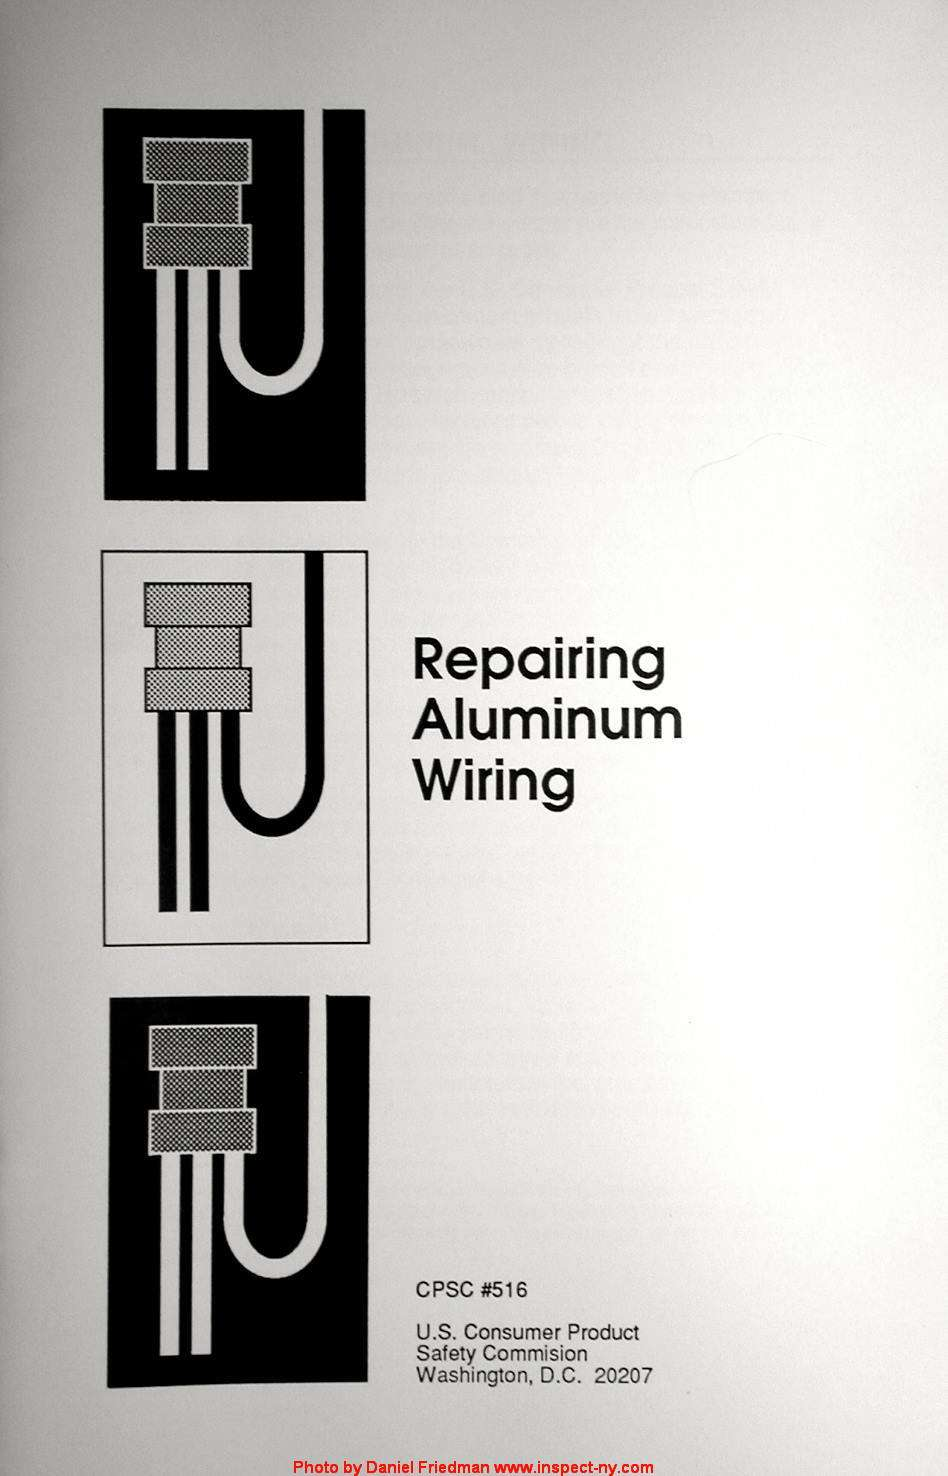 repairing aluminum wiring cpsc 516 us consumer product safety rh inspectapedia com Knob and Tube Wiring cpsc safety recommendations for aluminum wiring in homes